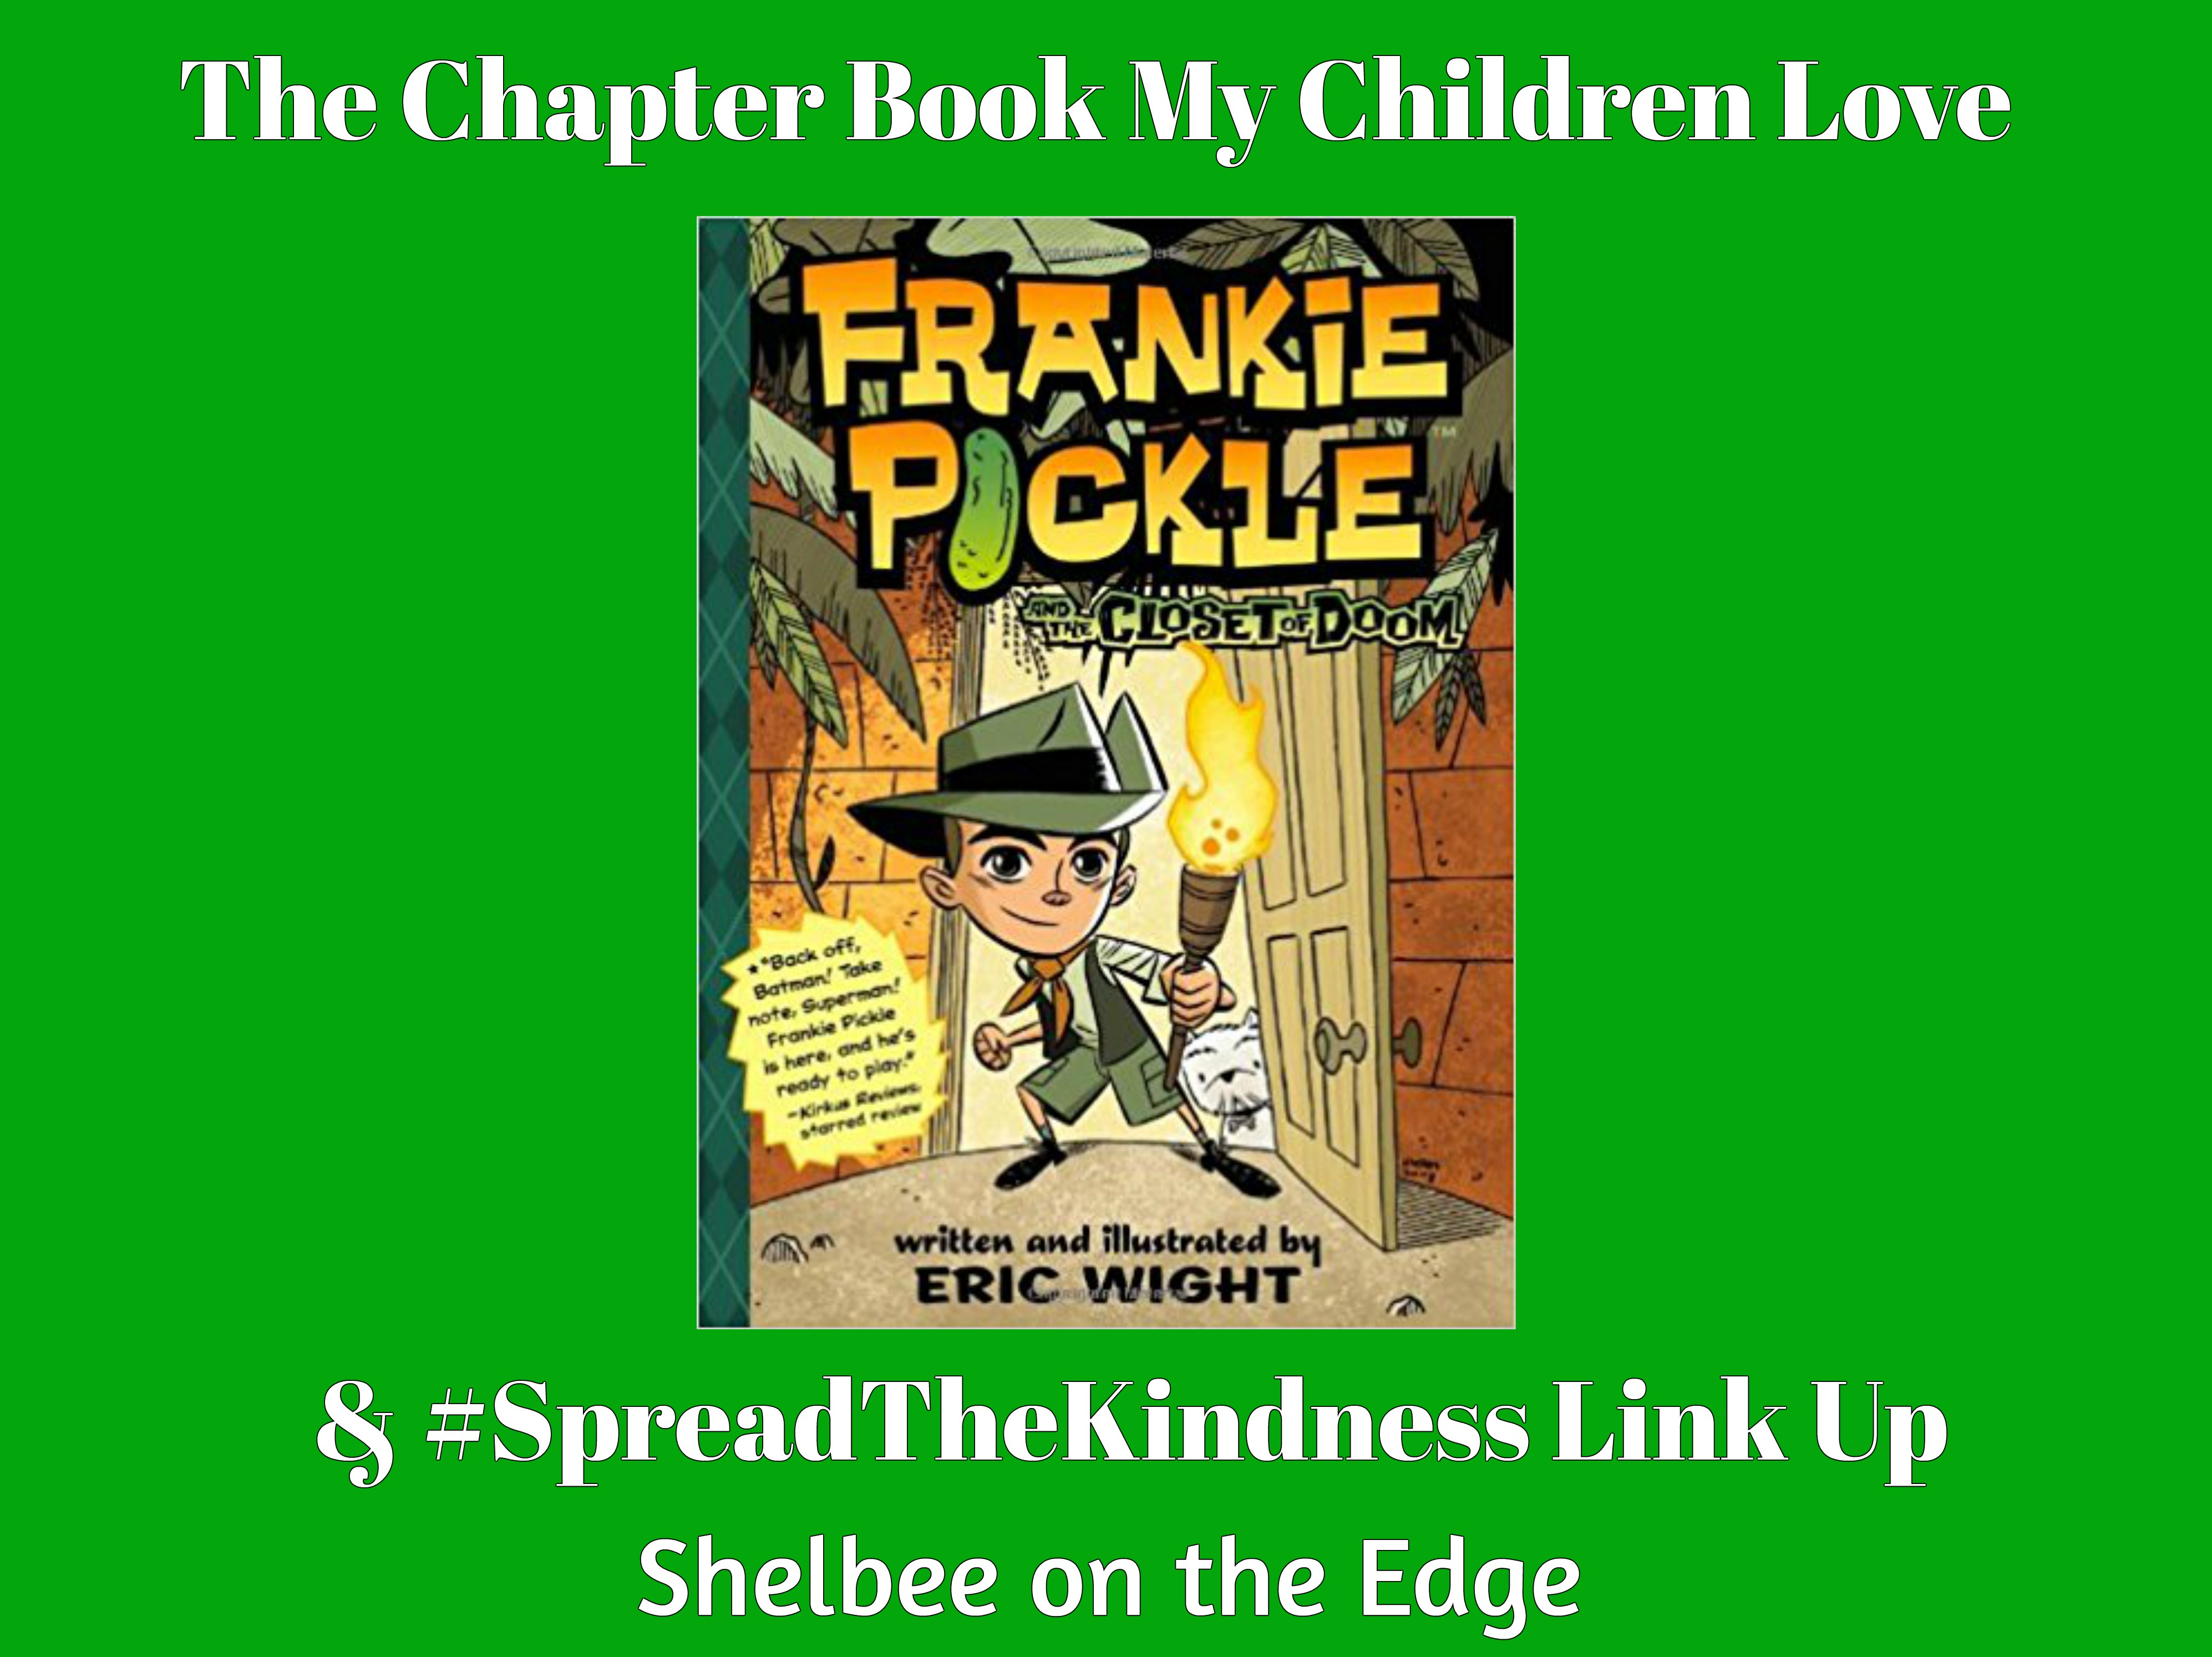 The Chapter Book My Children Love & #SpreadTheKindness Link Up #59